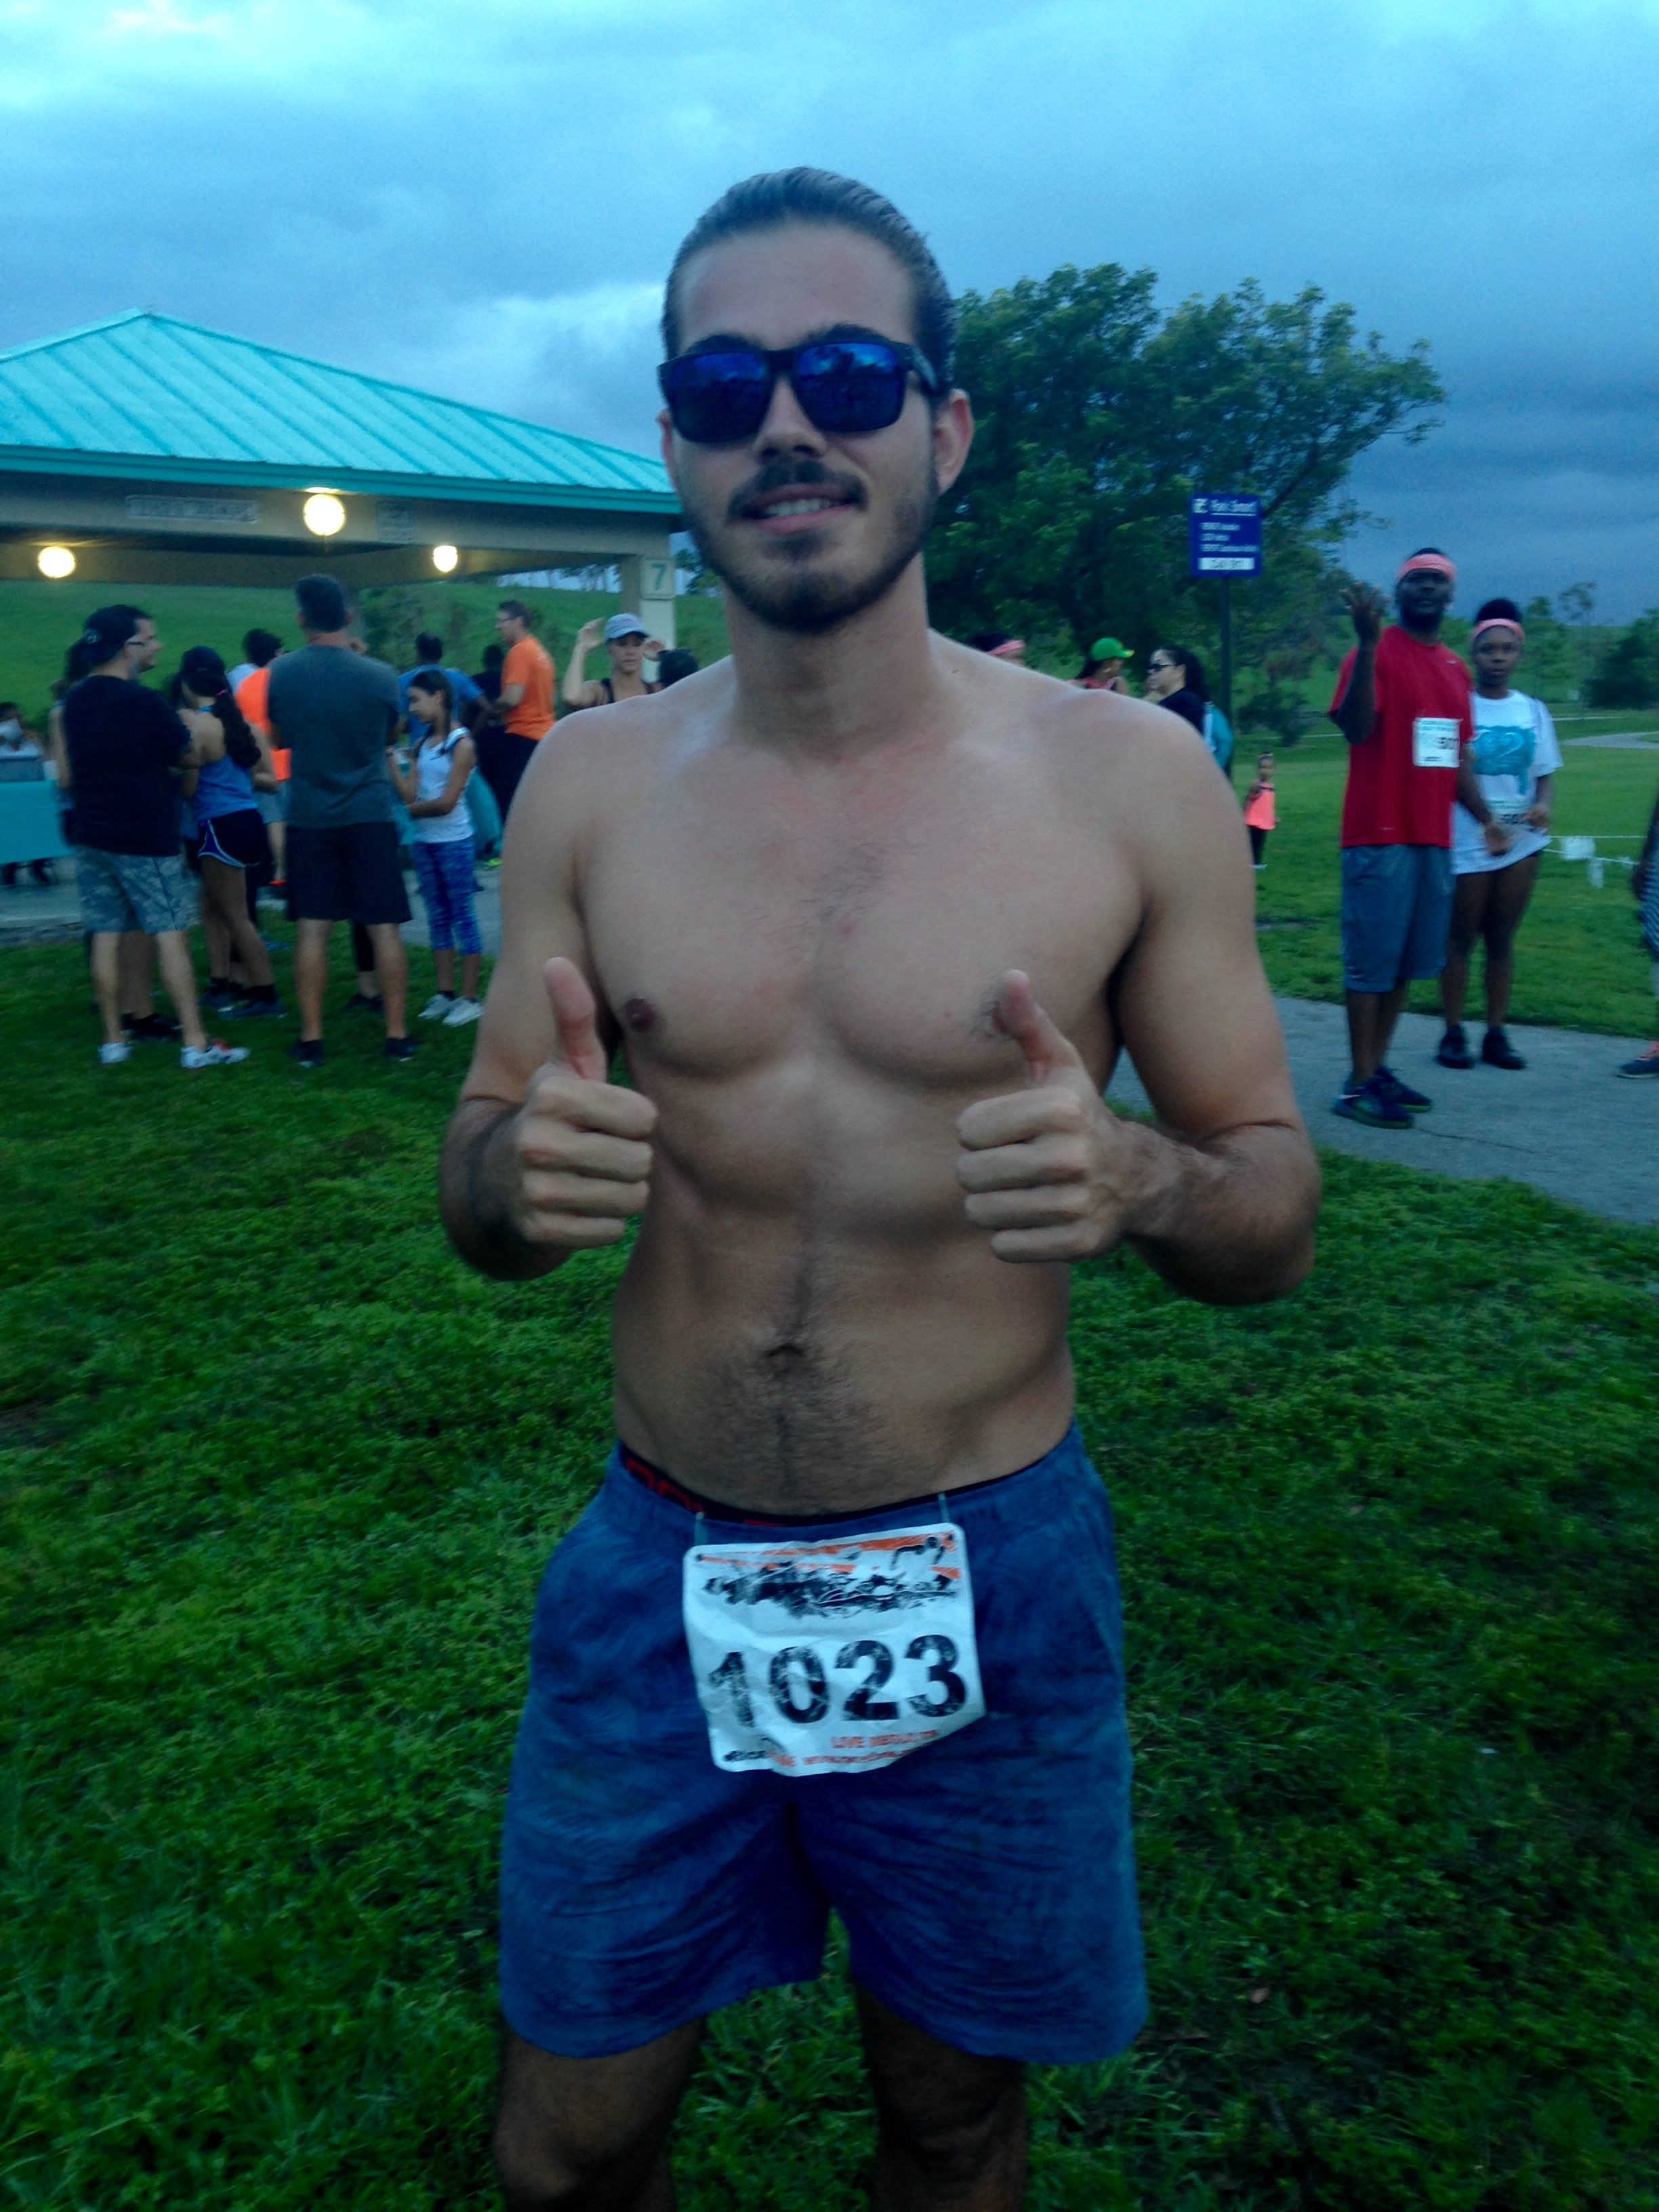 FullSizeRender 011 - Florida Teal 5K Run & Fun